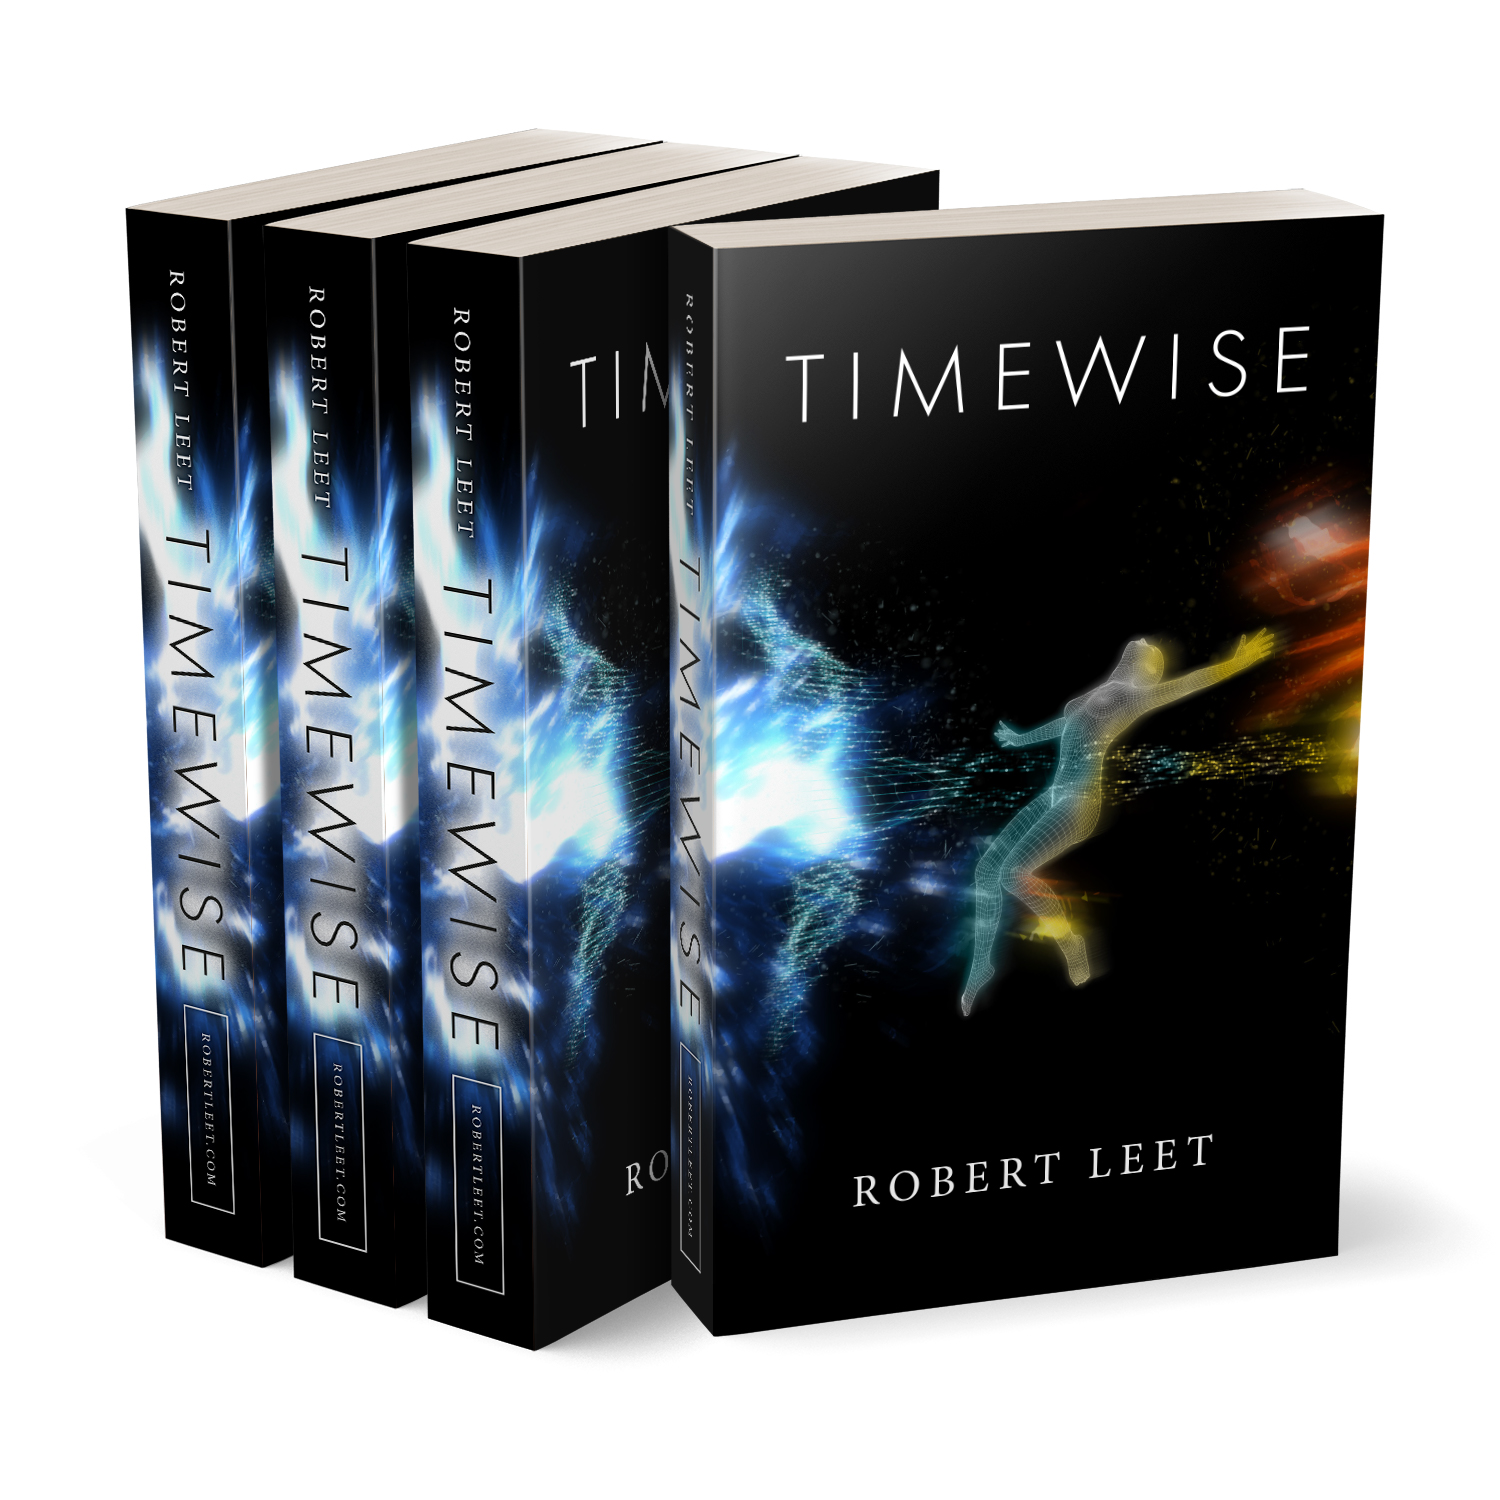 'Timewise' is temporally-fractured scifi novel by author Robert Leet. The book cover was designed by Mark Thomas, of coverness.com. To find out more about my book design services, please visit www.coverness.com.